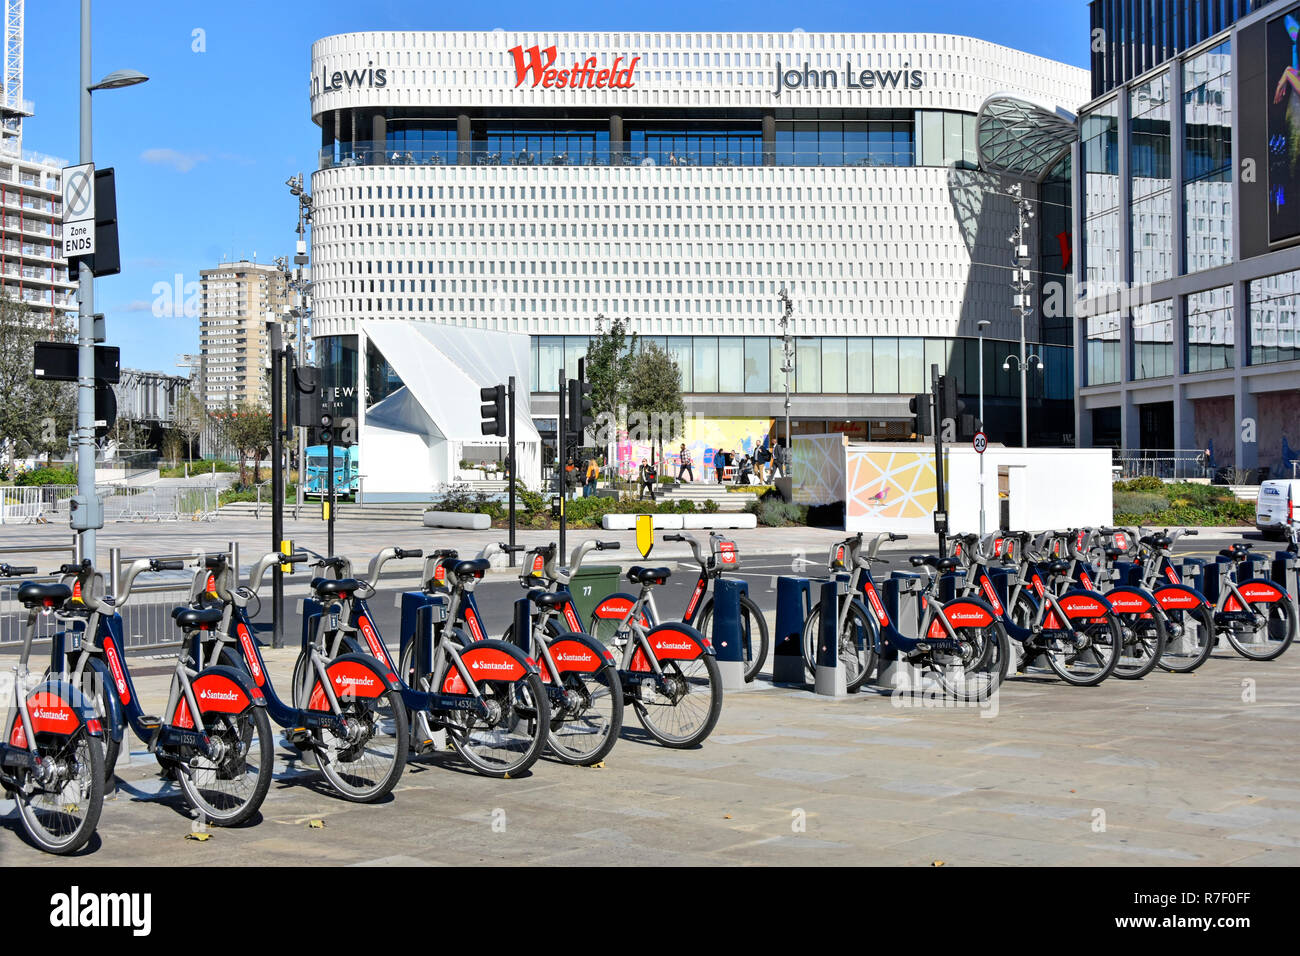 John Lewis big modern Westfield White City department store building at Shepherds Bush Westfield shopping centre Santander bike hire London England UK - Stock Image